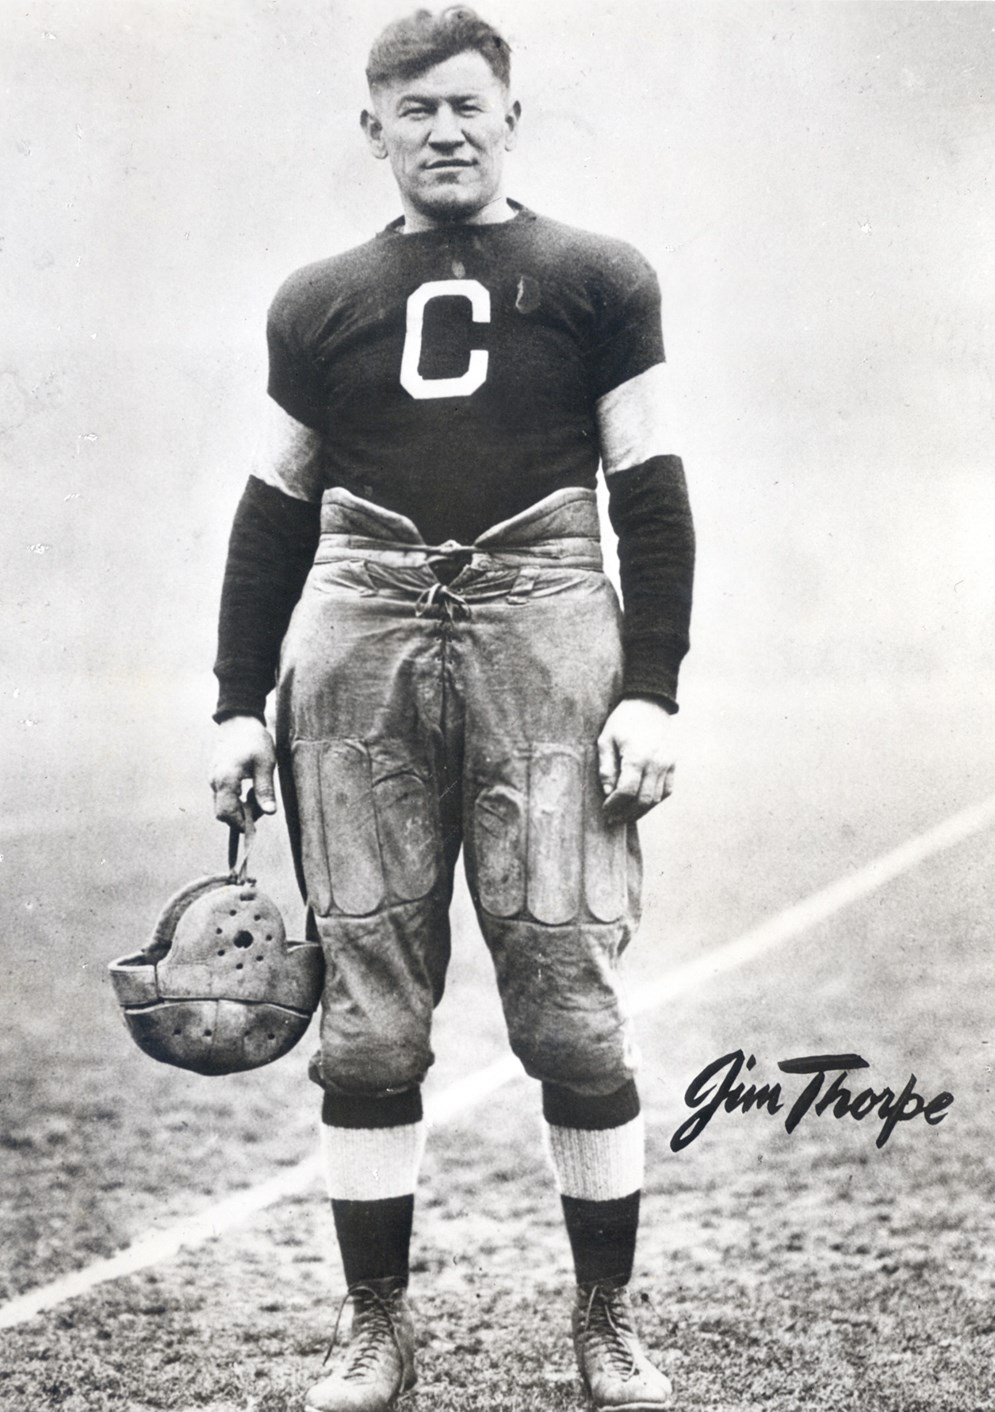 Jim Thorpe, 6 feet 1 inch tall and about 200 pounds, combined speed with bruising power as a halfback. (Pro Football Hall of Fame)